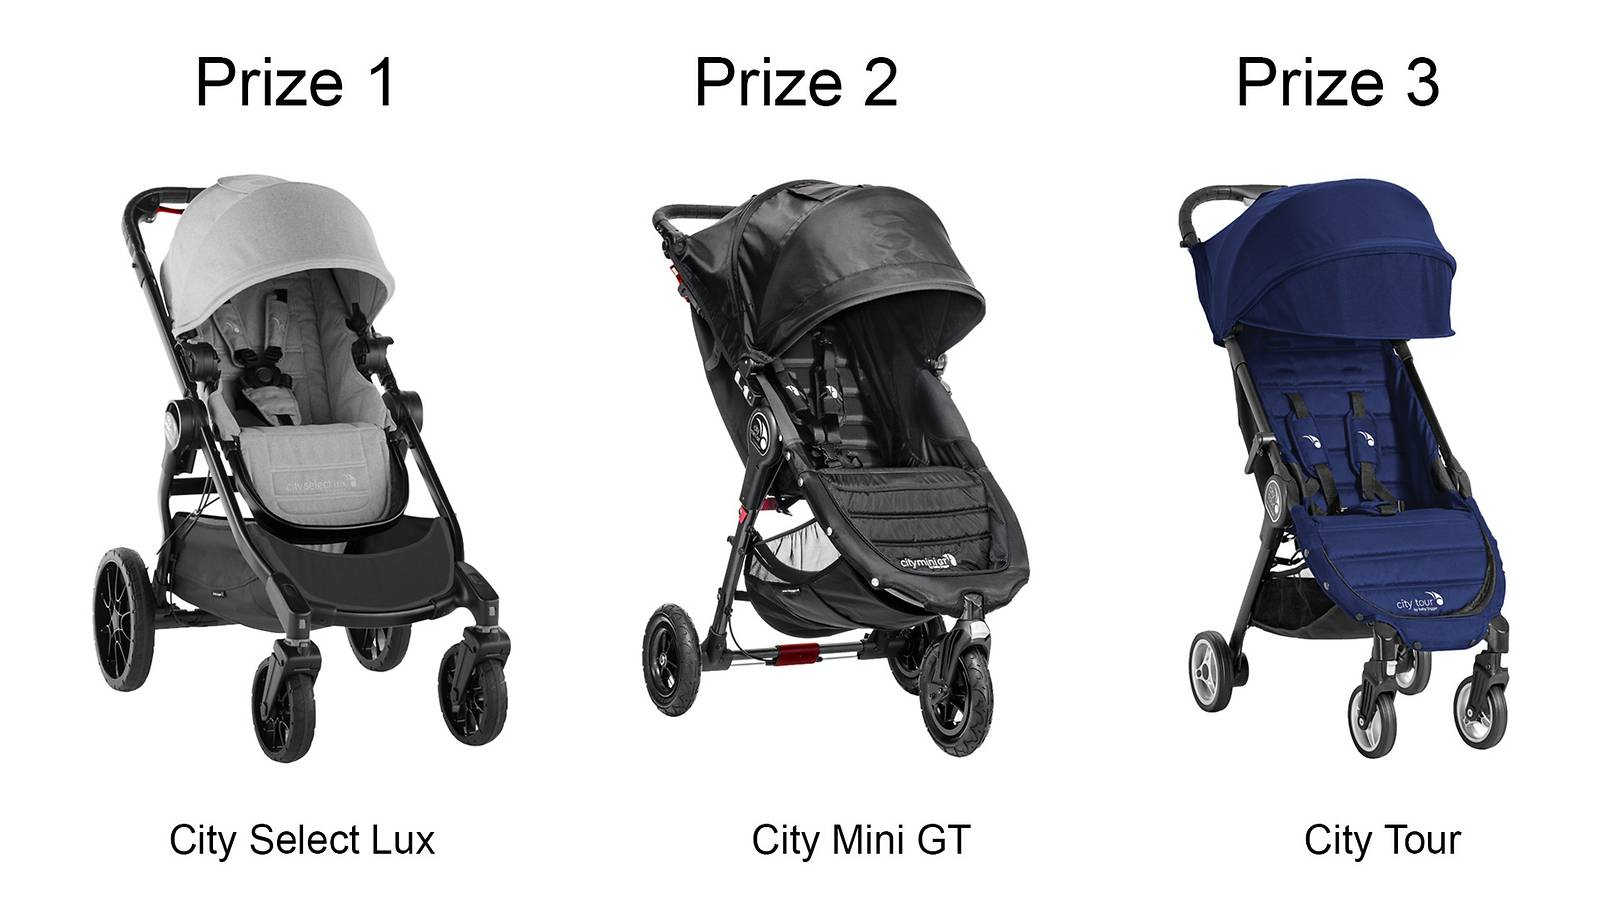 WIN Baby Jogger strollers and accessories, worth up to $1,659!